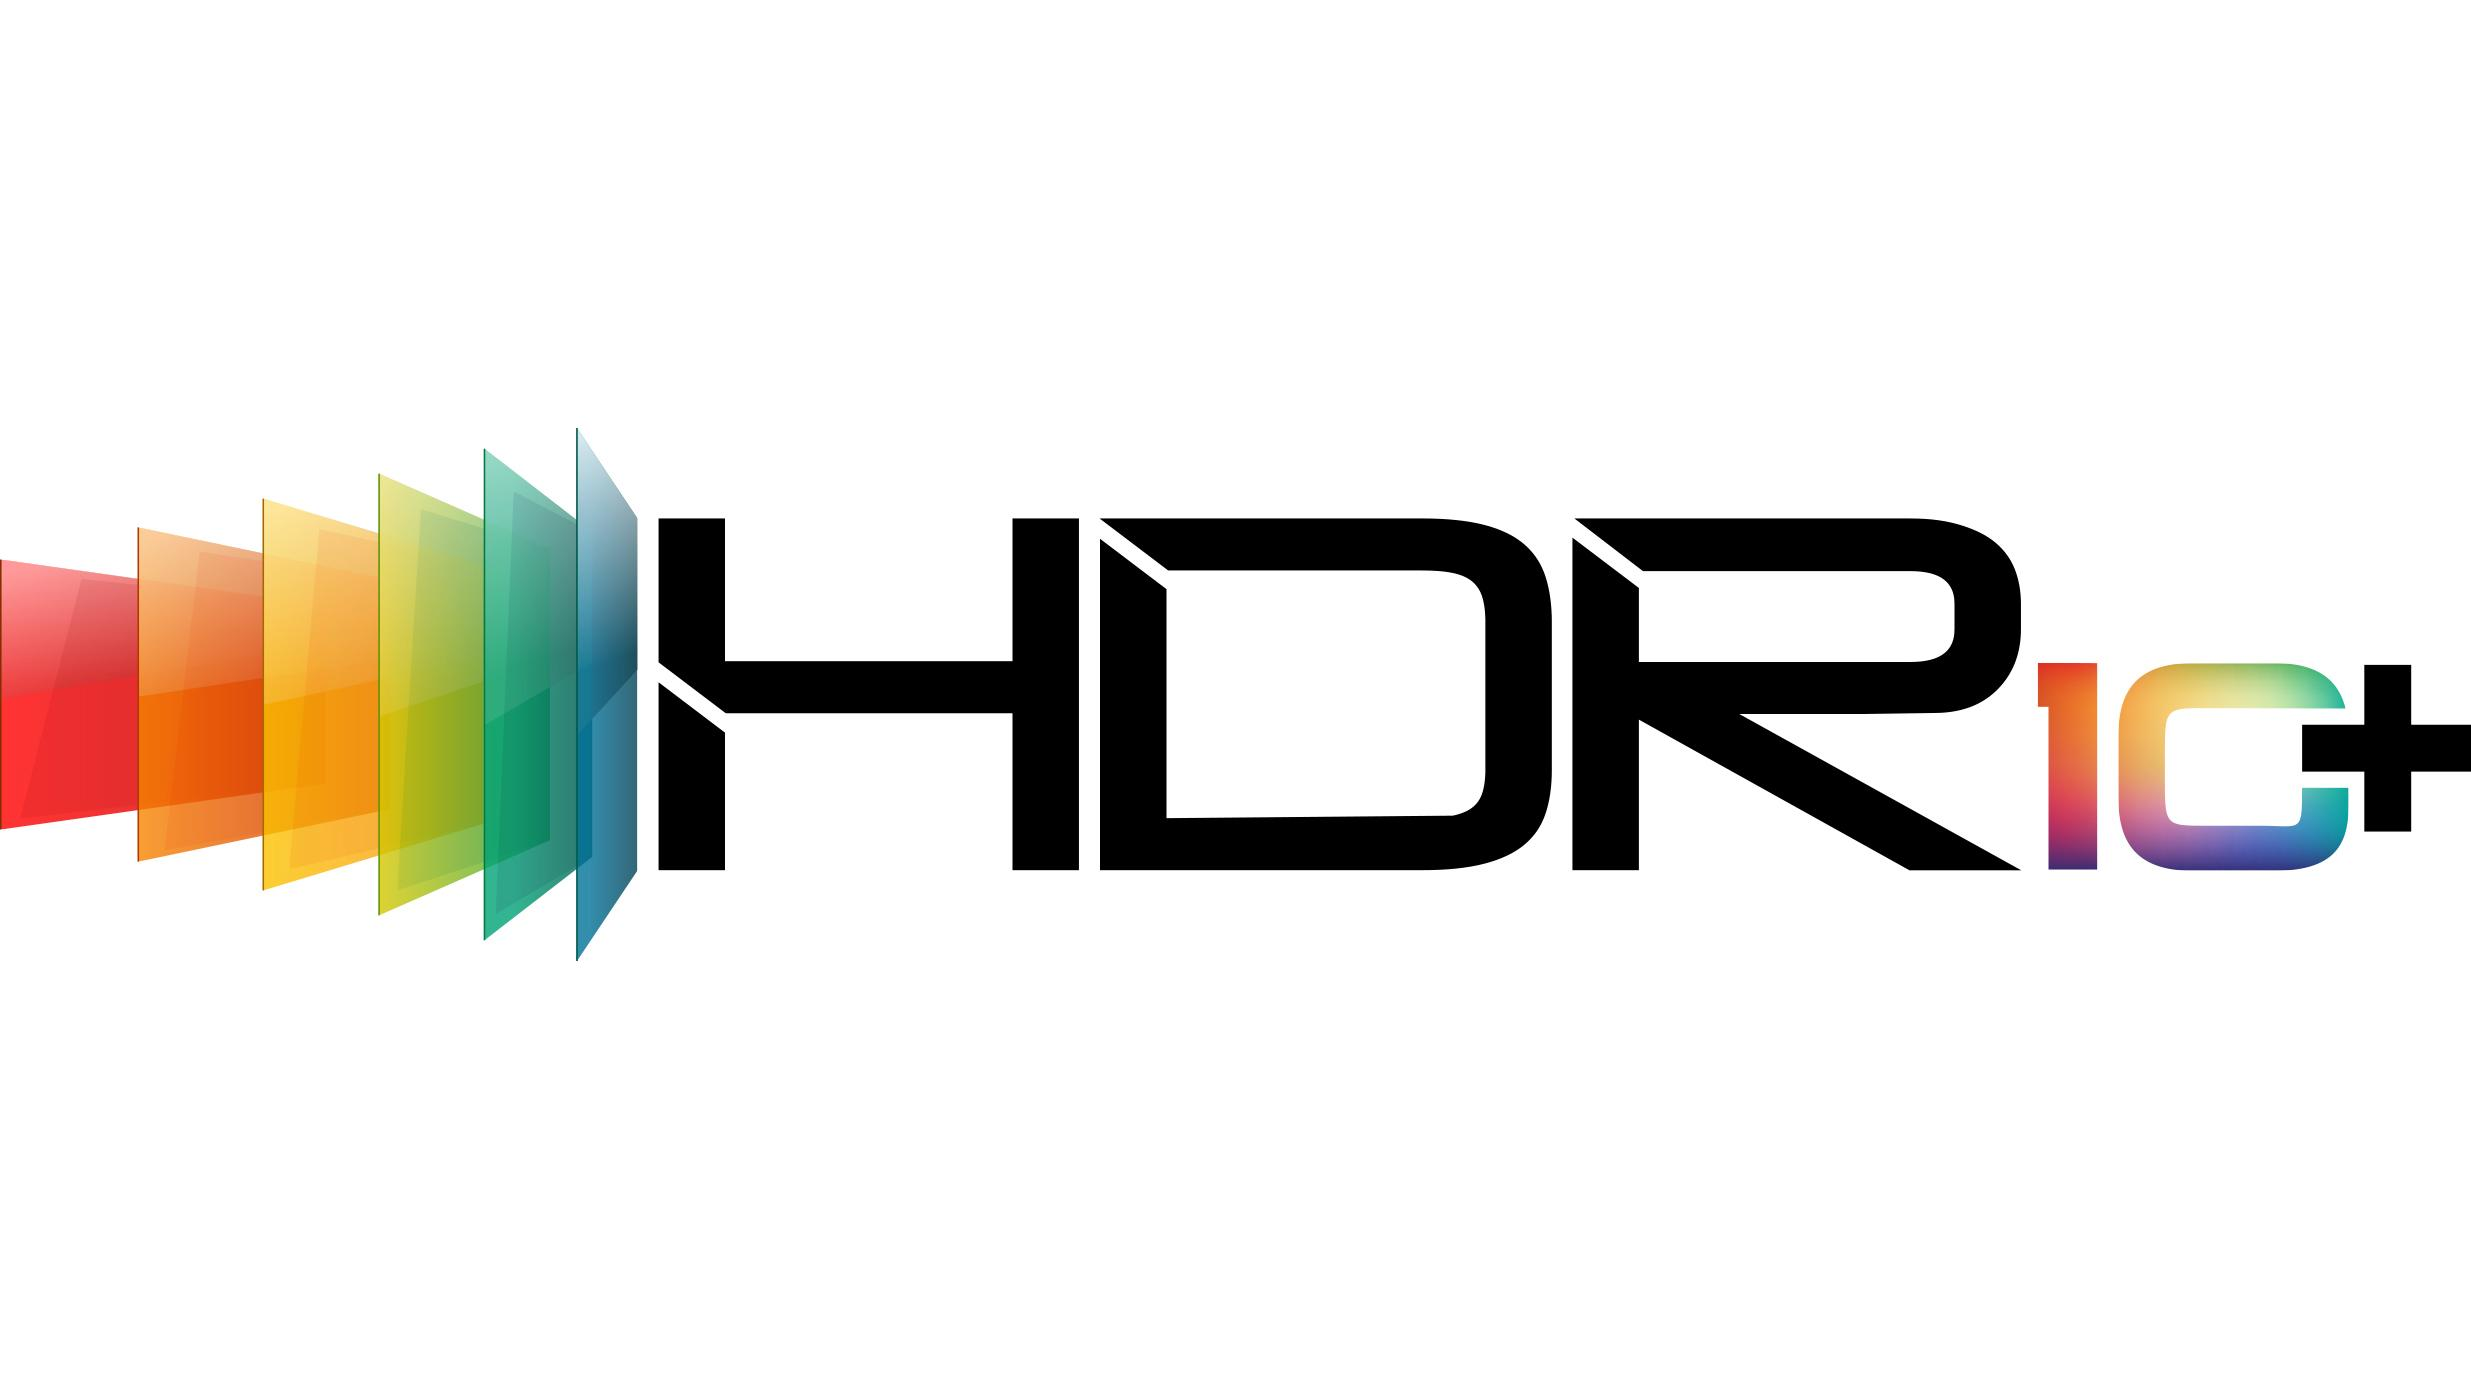 image: HDR10+ logo in color